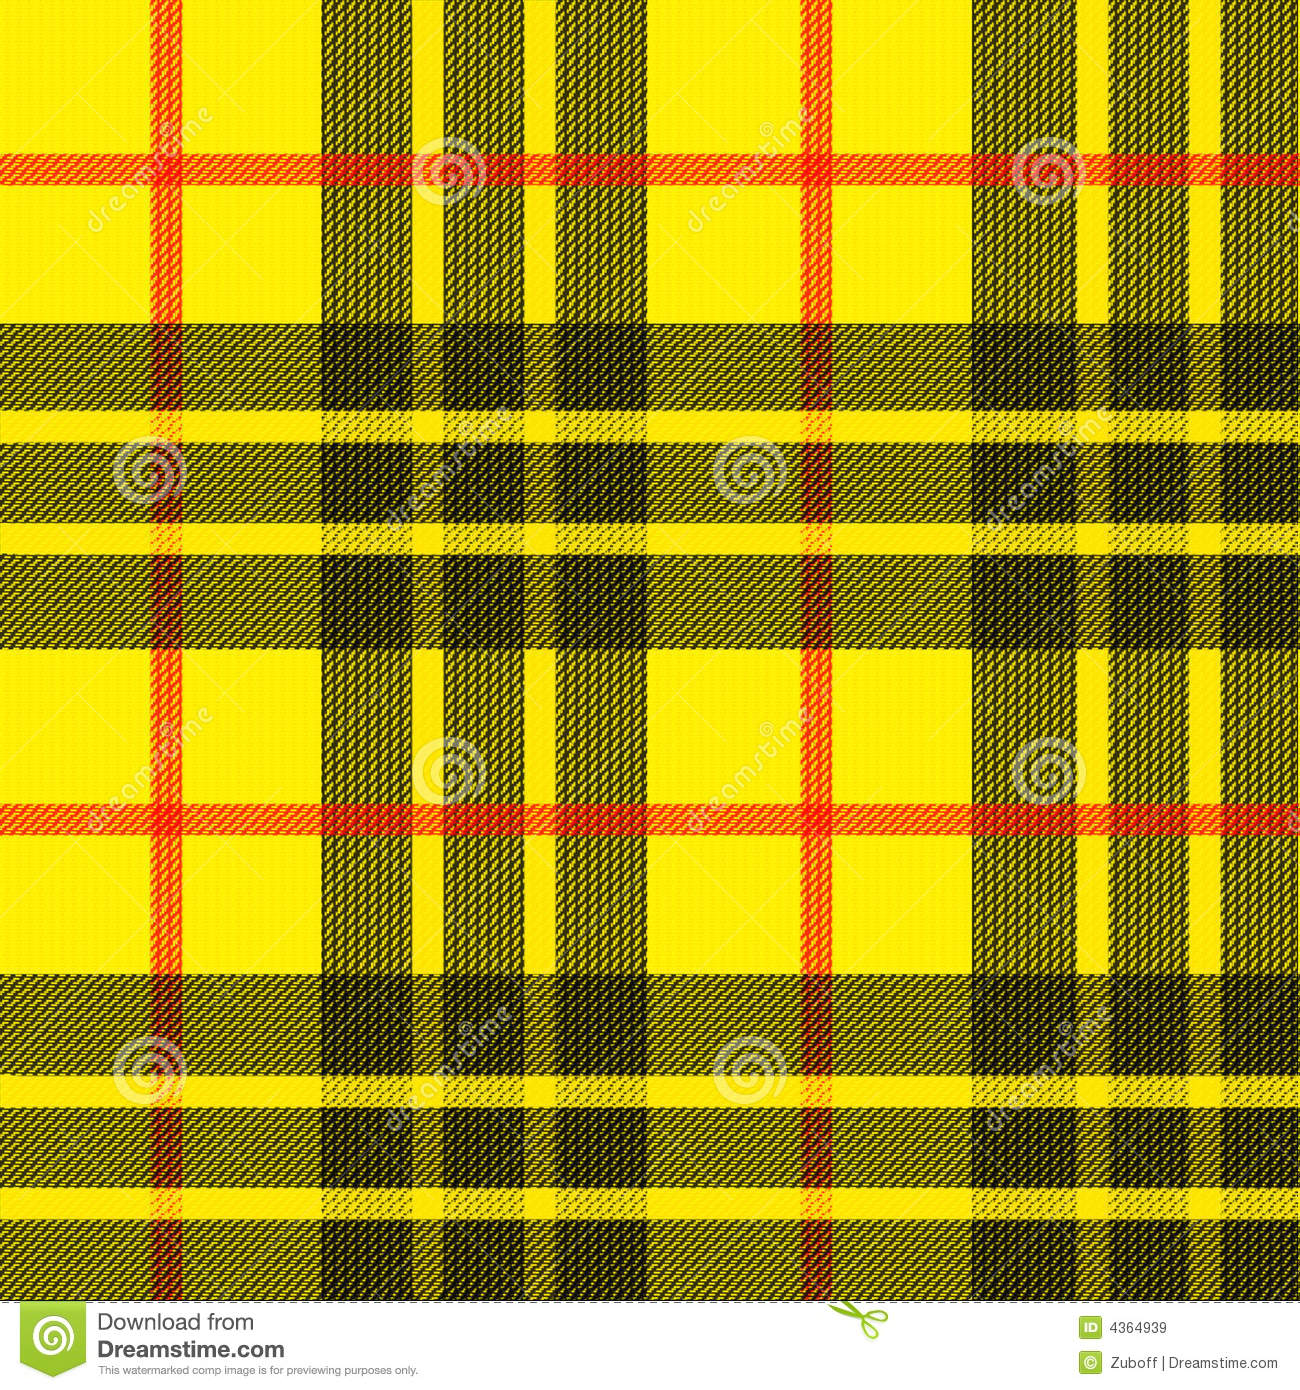 Tartan Pattern tartan-pattern royalty free stock images - image: 4364939